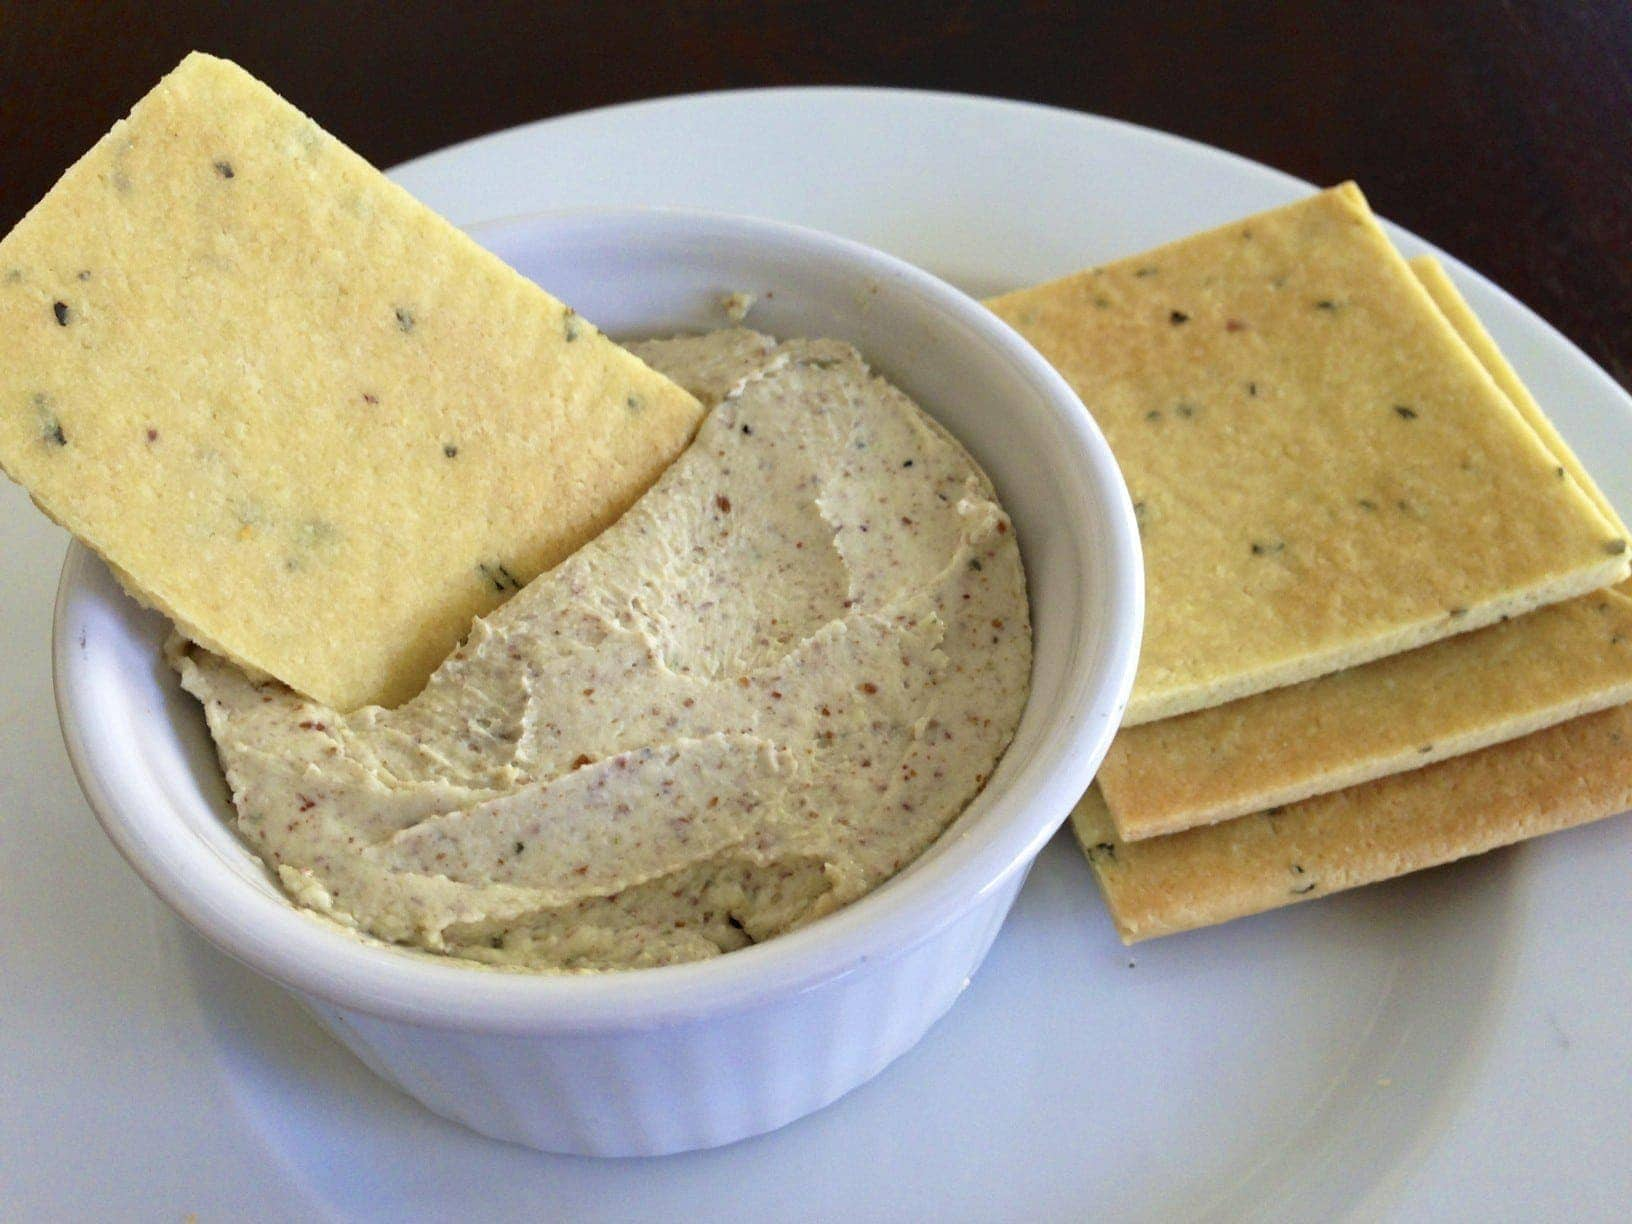 ... Garlic Basil Cheese Dip and Homemade Gluten Free Basil Crackers